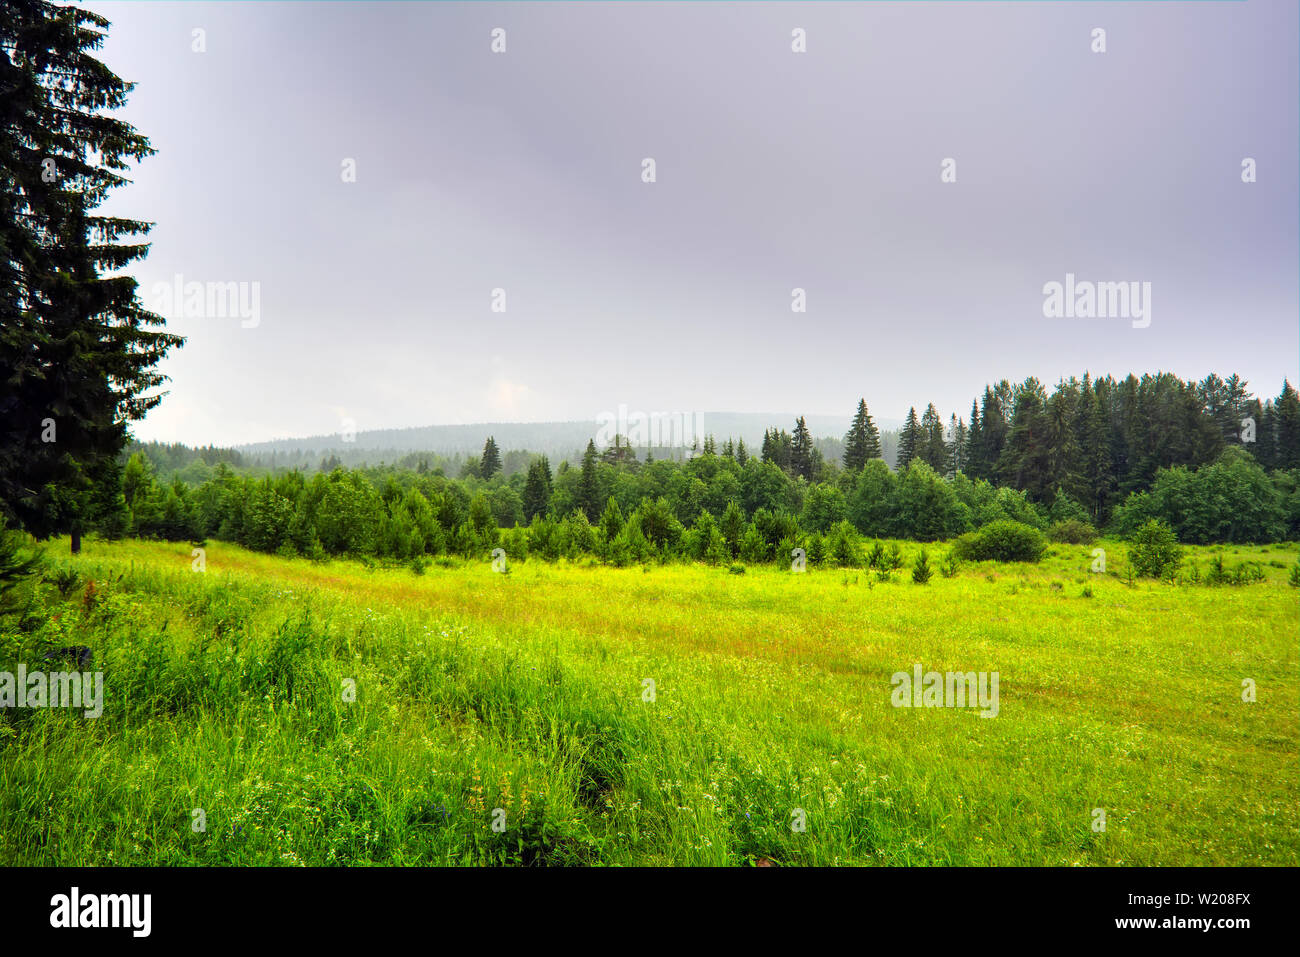 Summer landscape with green grass and wild flowers on the background of a coniferous forest. - Stock Image